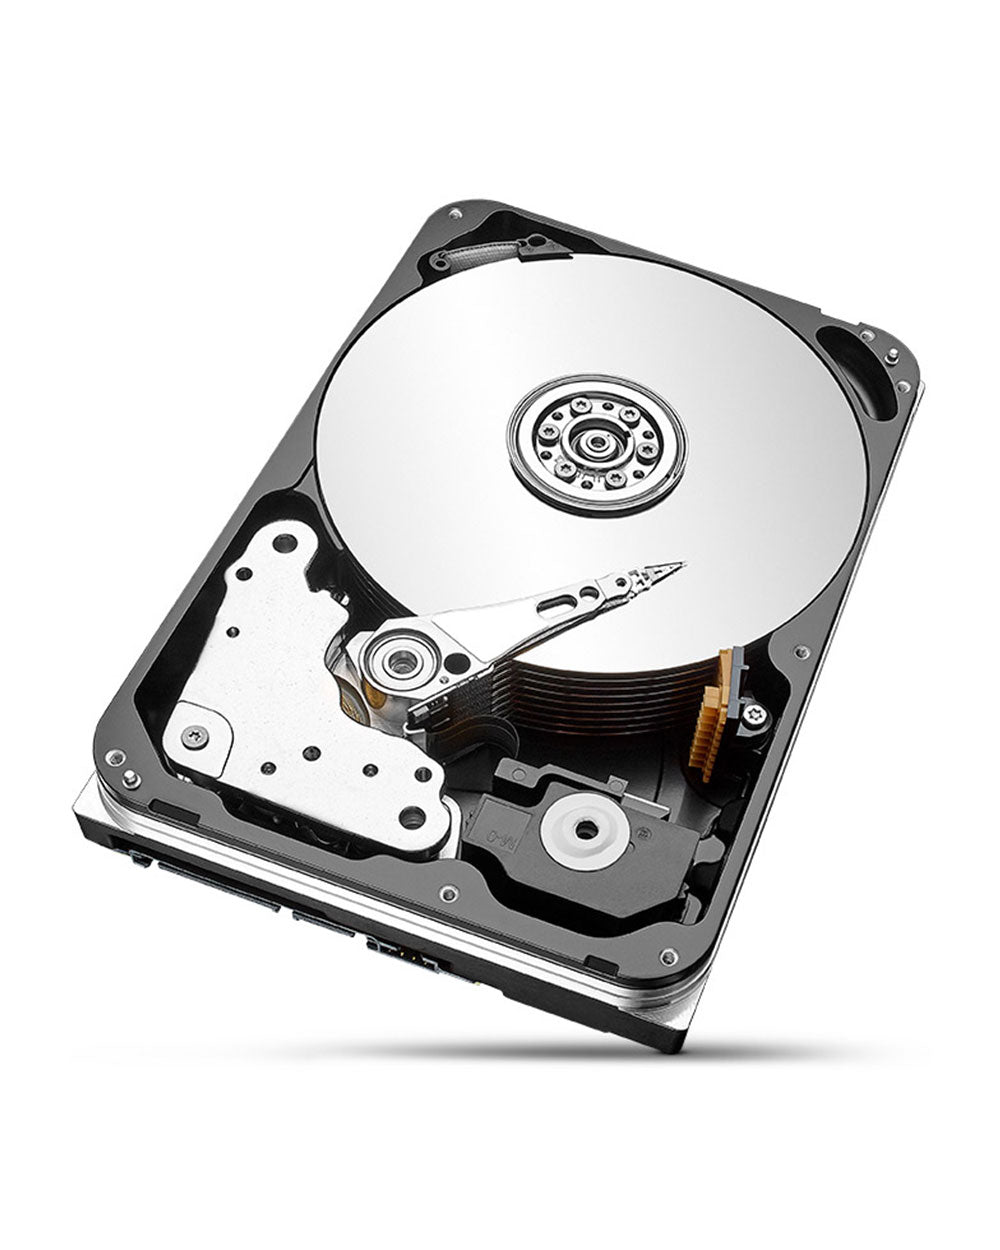 16TB - Seagate Exos Enterprise SATA 6Gb/s - ST16000NM001G